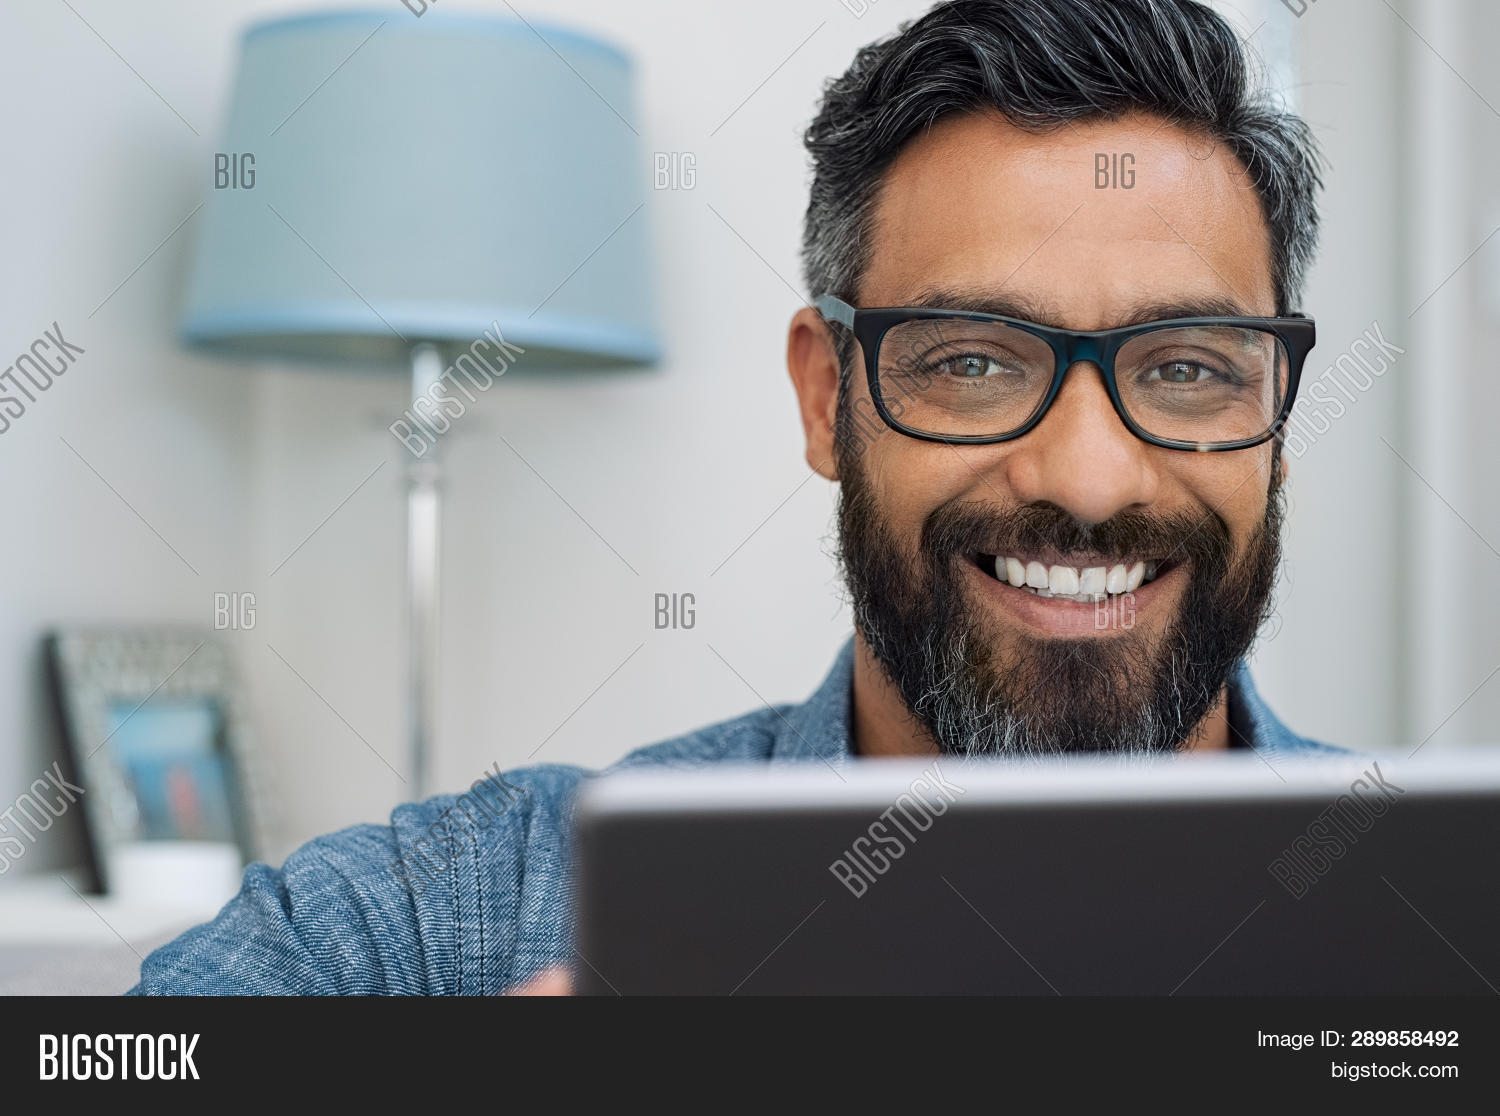 Closeup of businessman wearing glasses and working on laptop while looking at camera. Mature mixed r